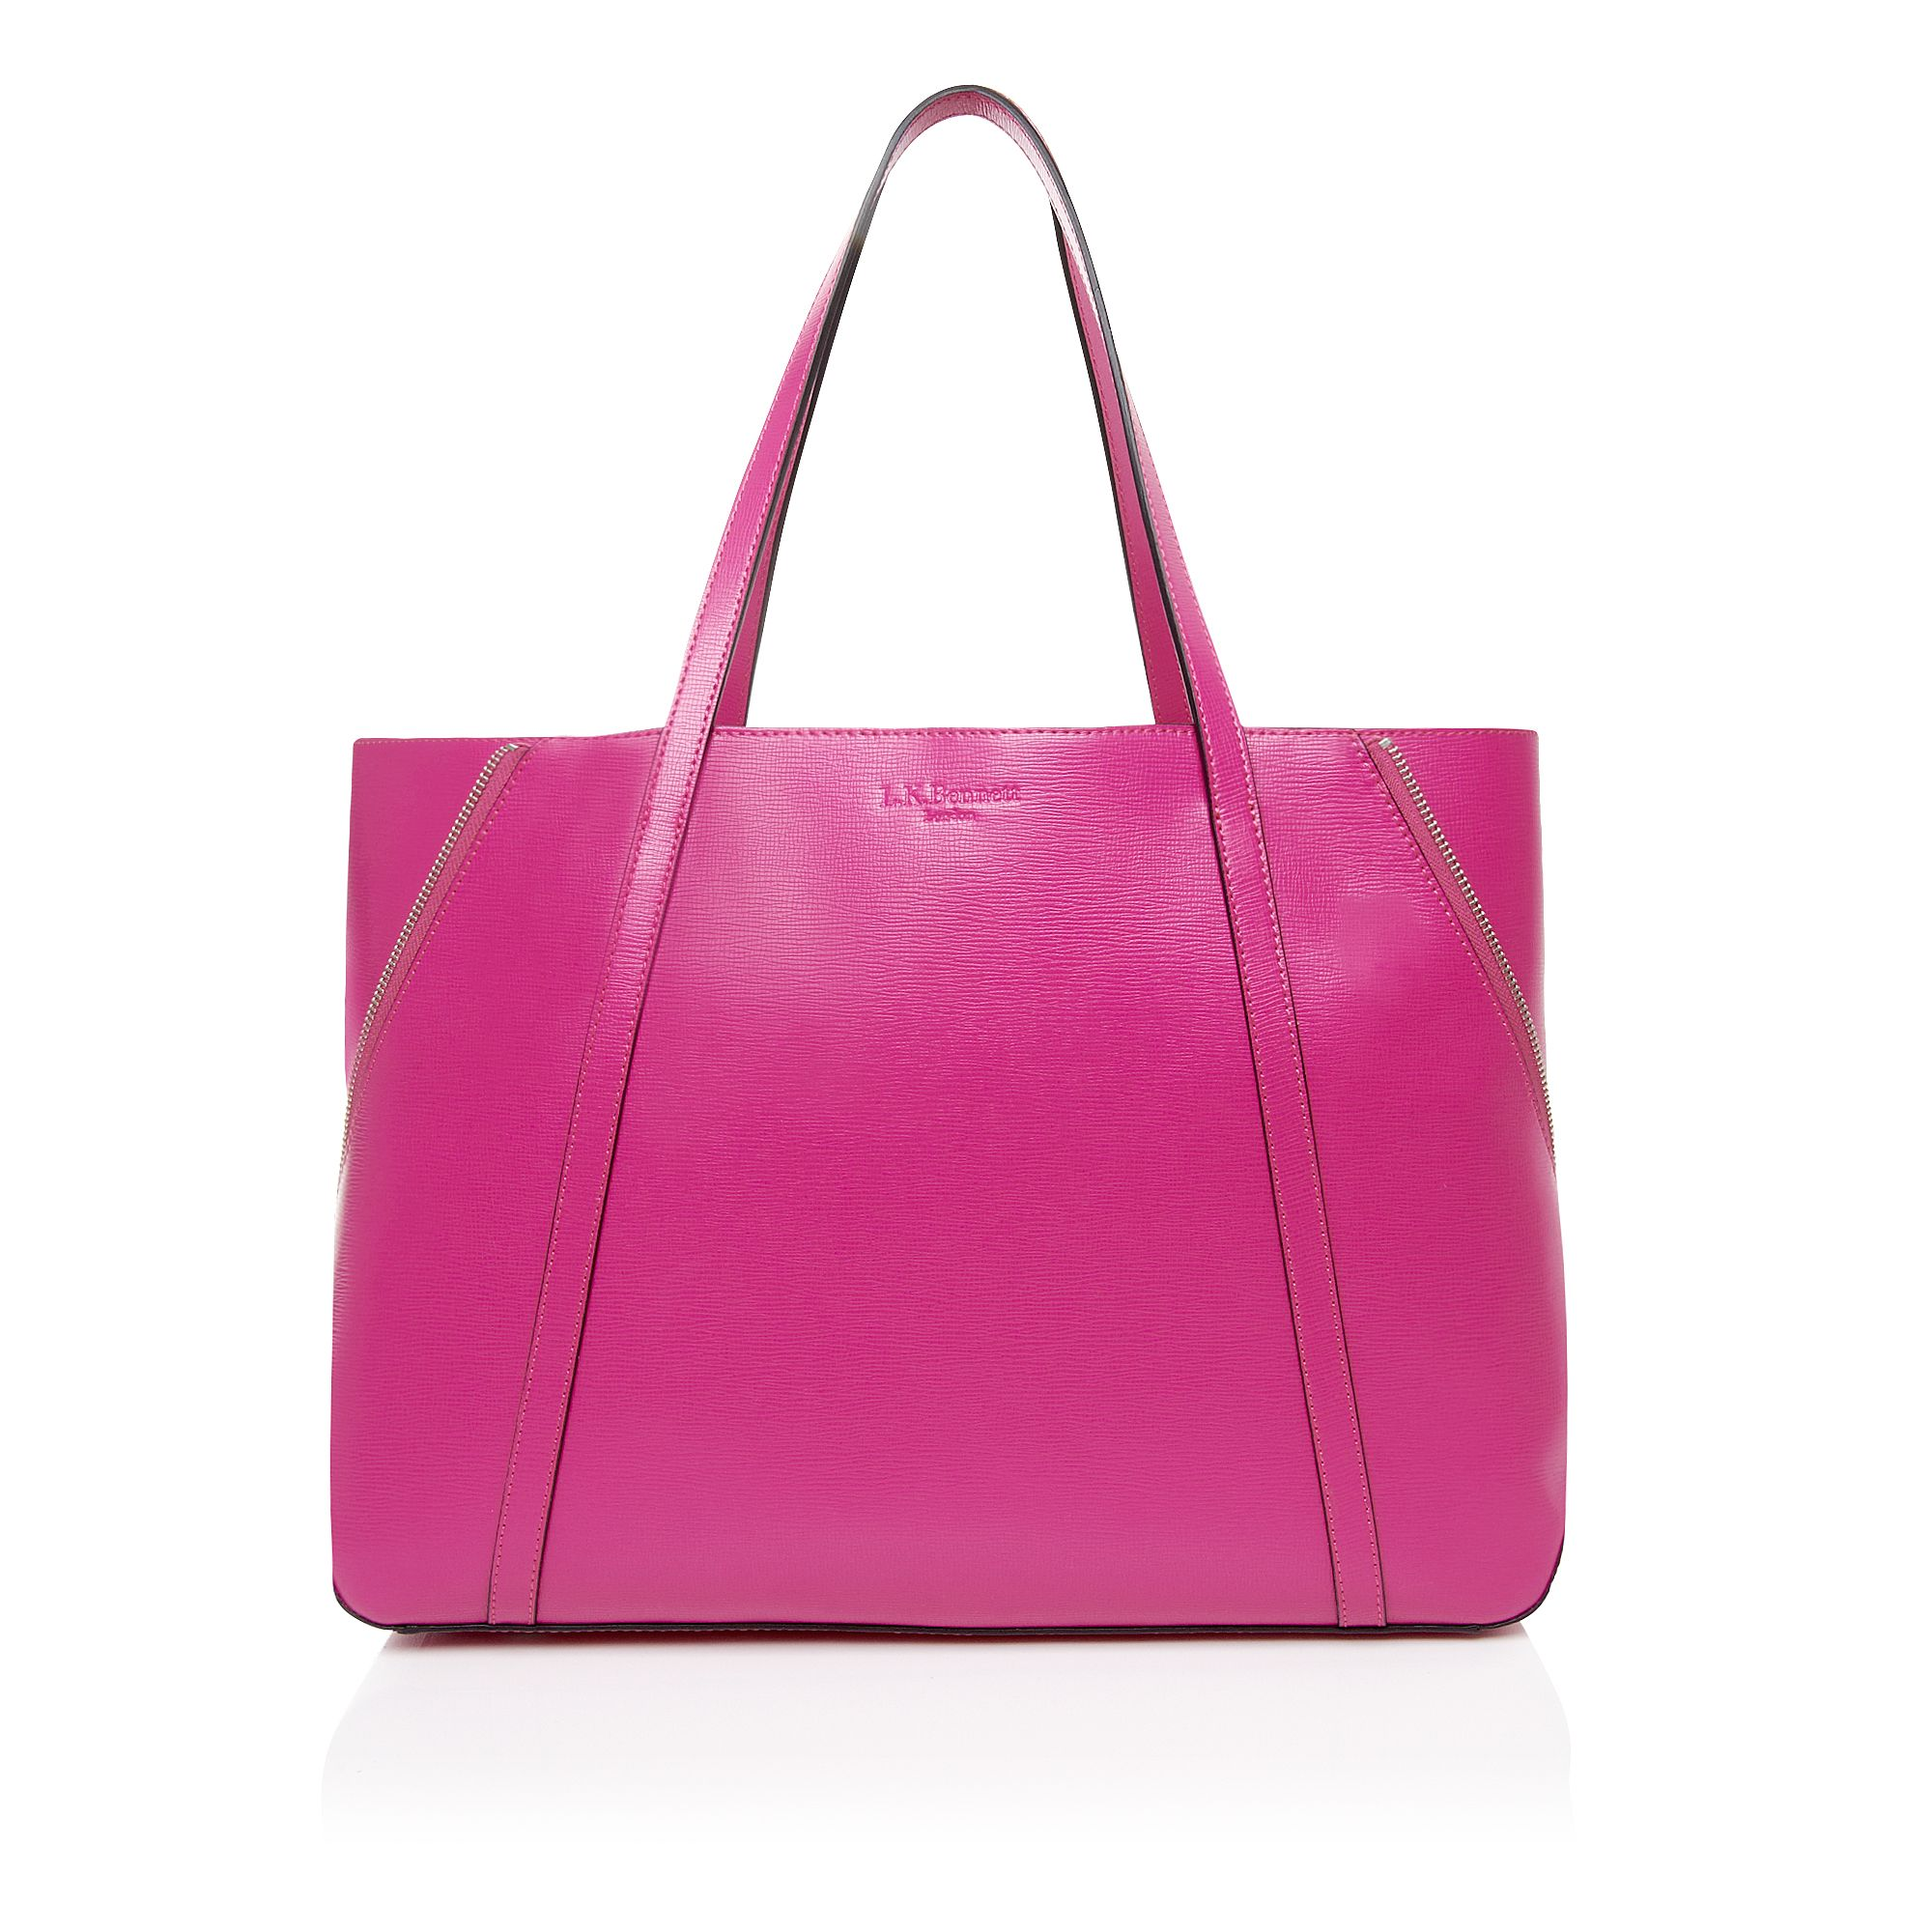 Kelly large winged tote bag